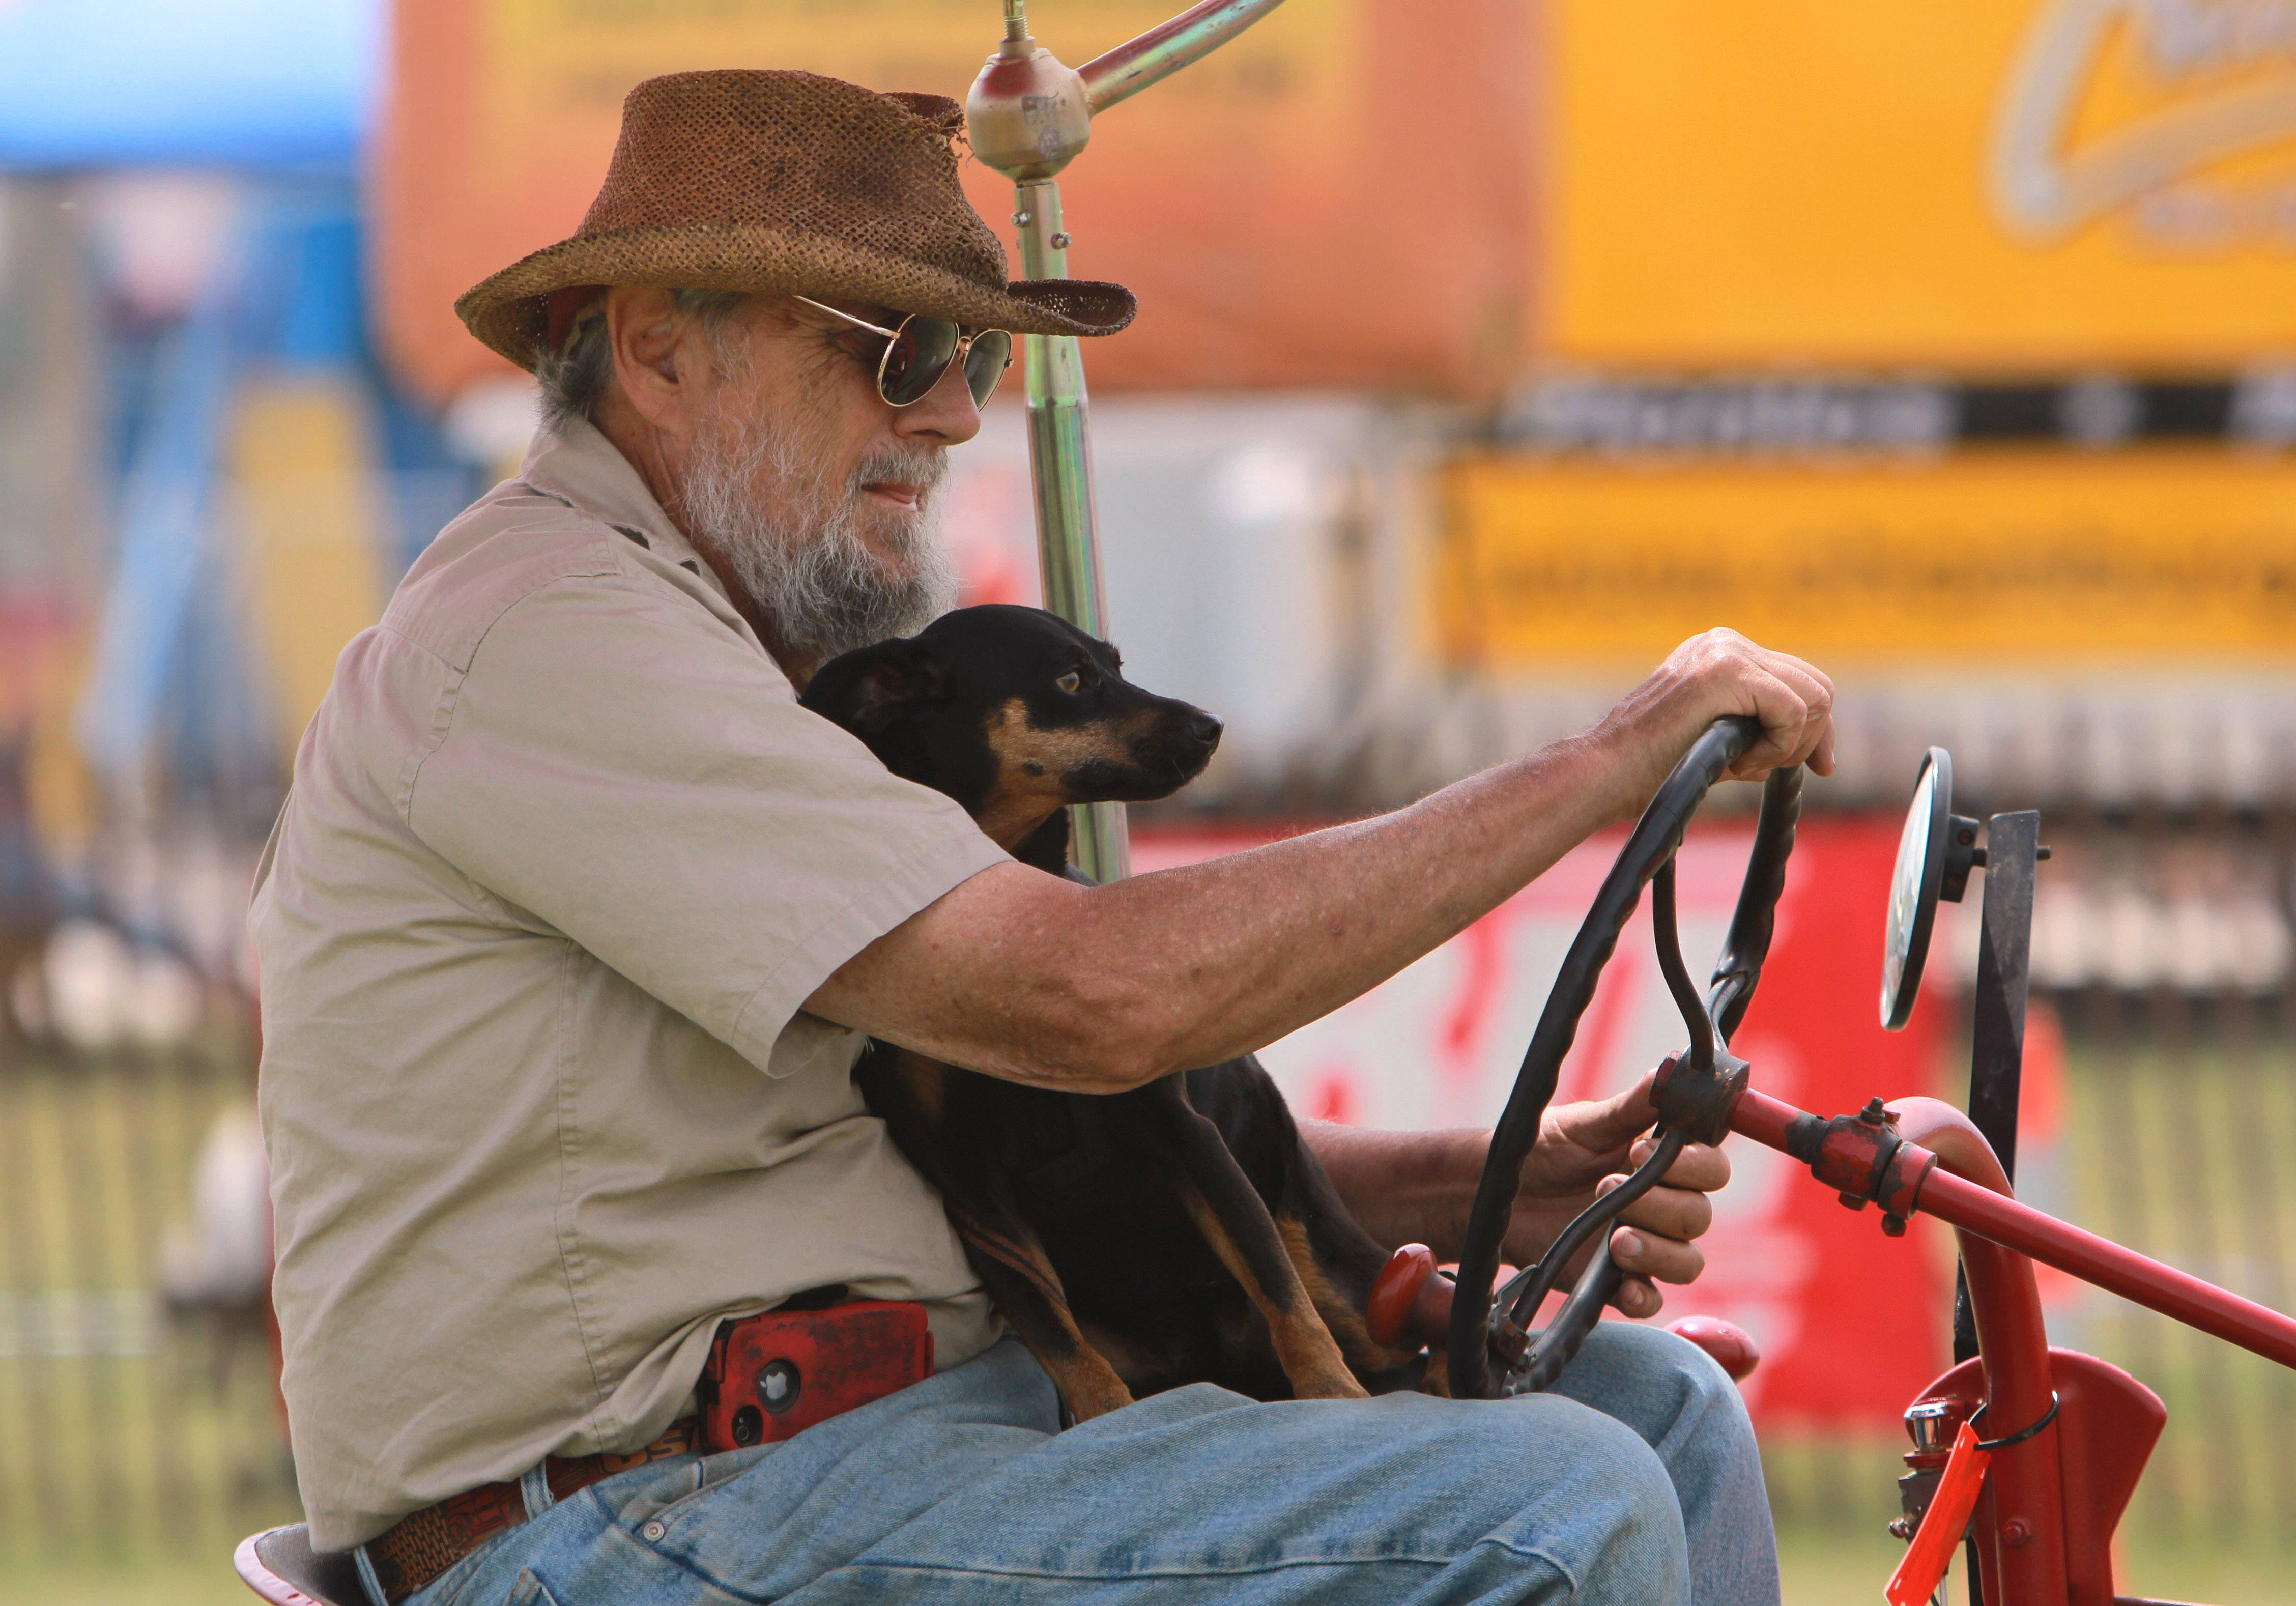 John Bauer, of Lake Zurich, drives his tractor with his dog Isabell Friday at the Lake County Fair in Grayslake.